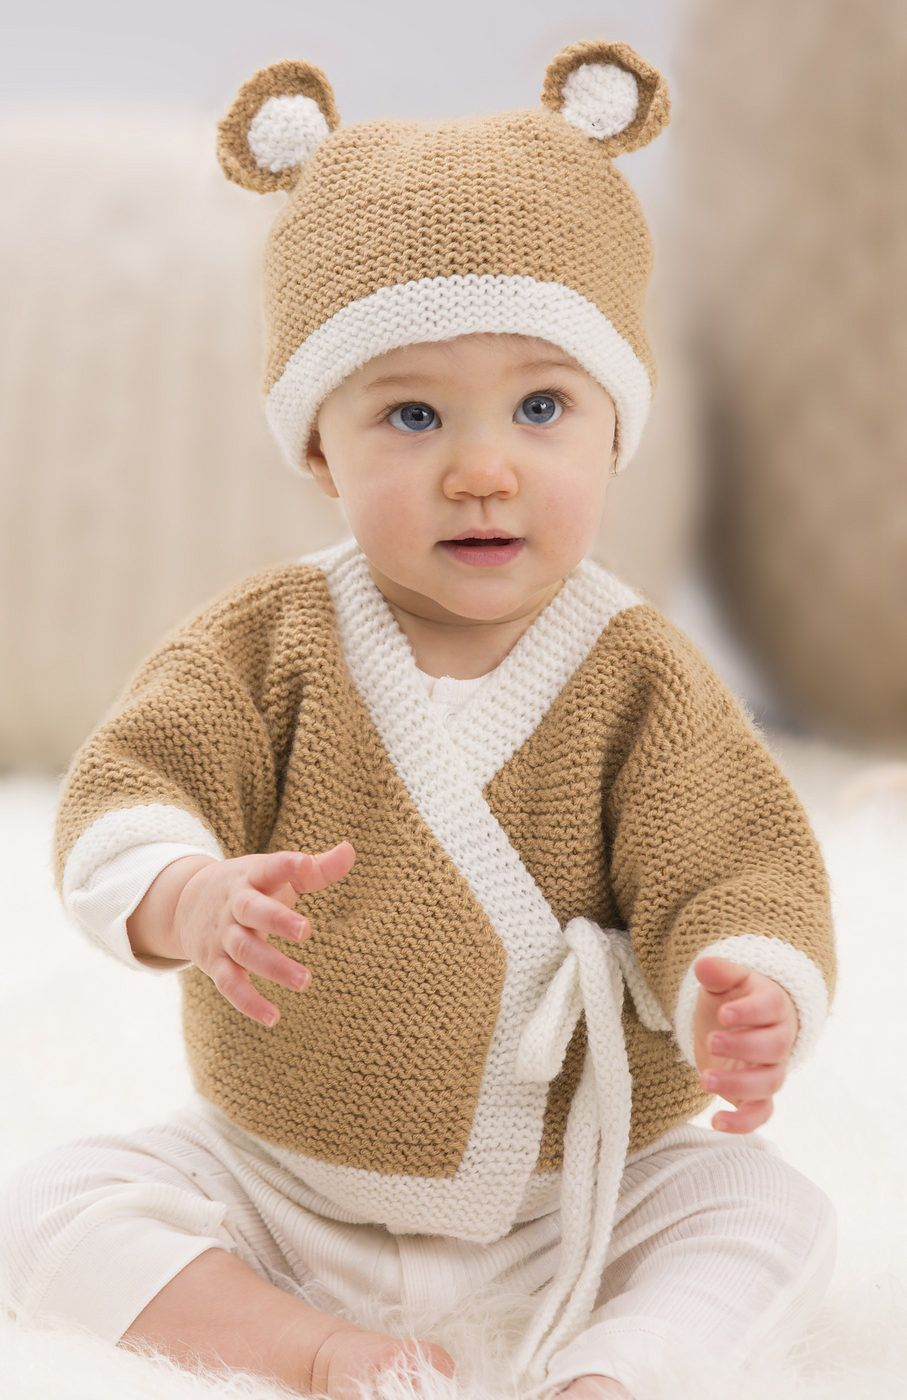 Free Knitting Pattern for Baby Teddy Sweater and Hat in Garter ...